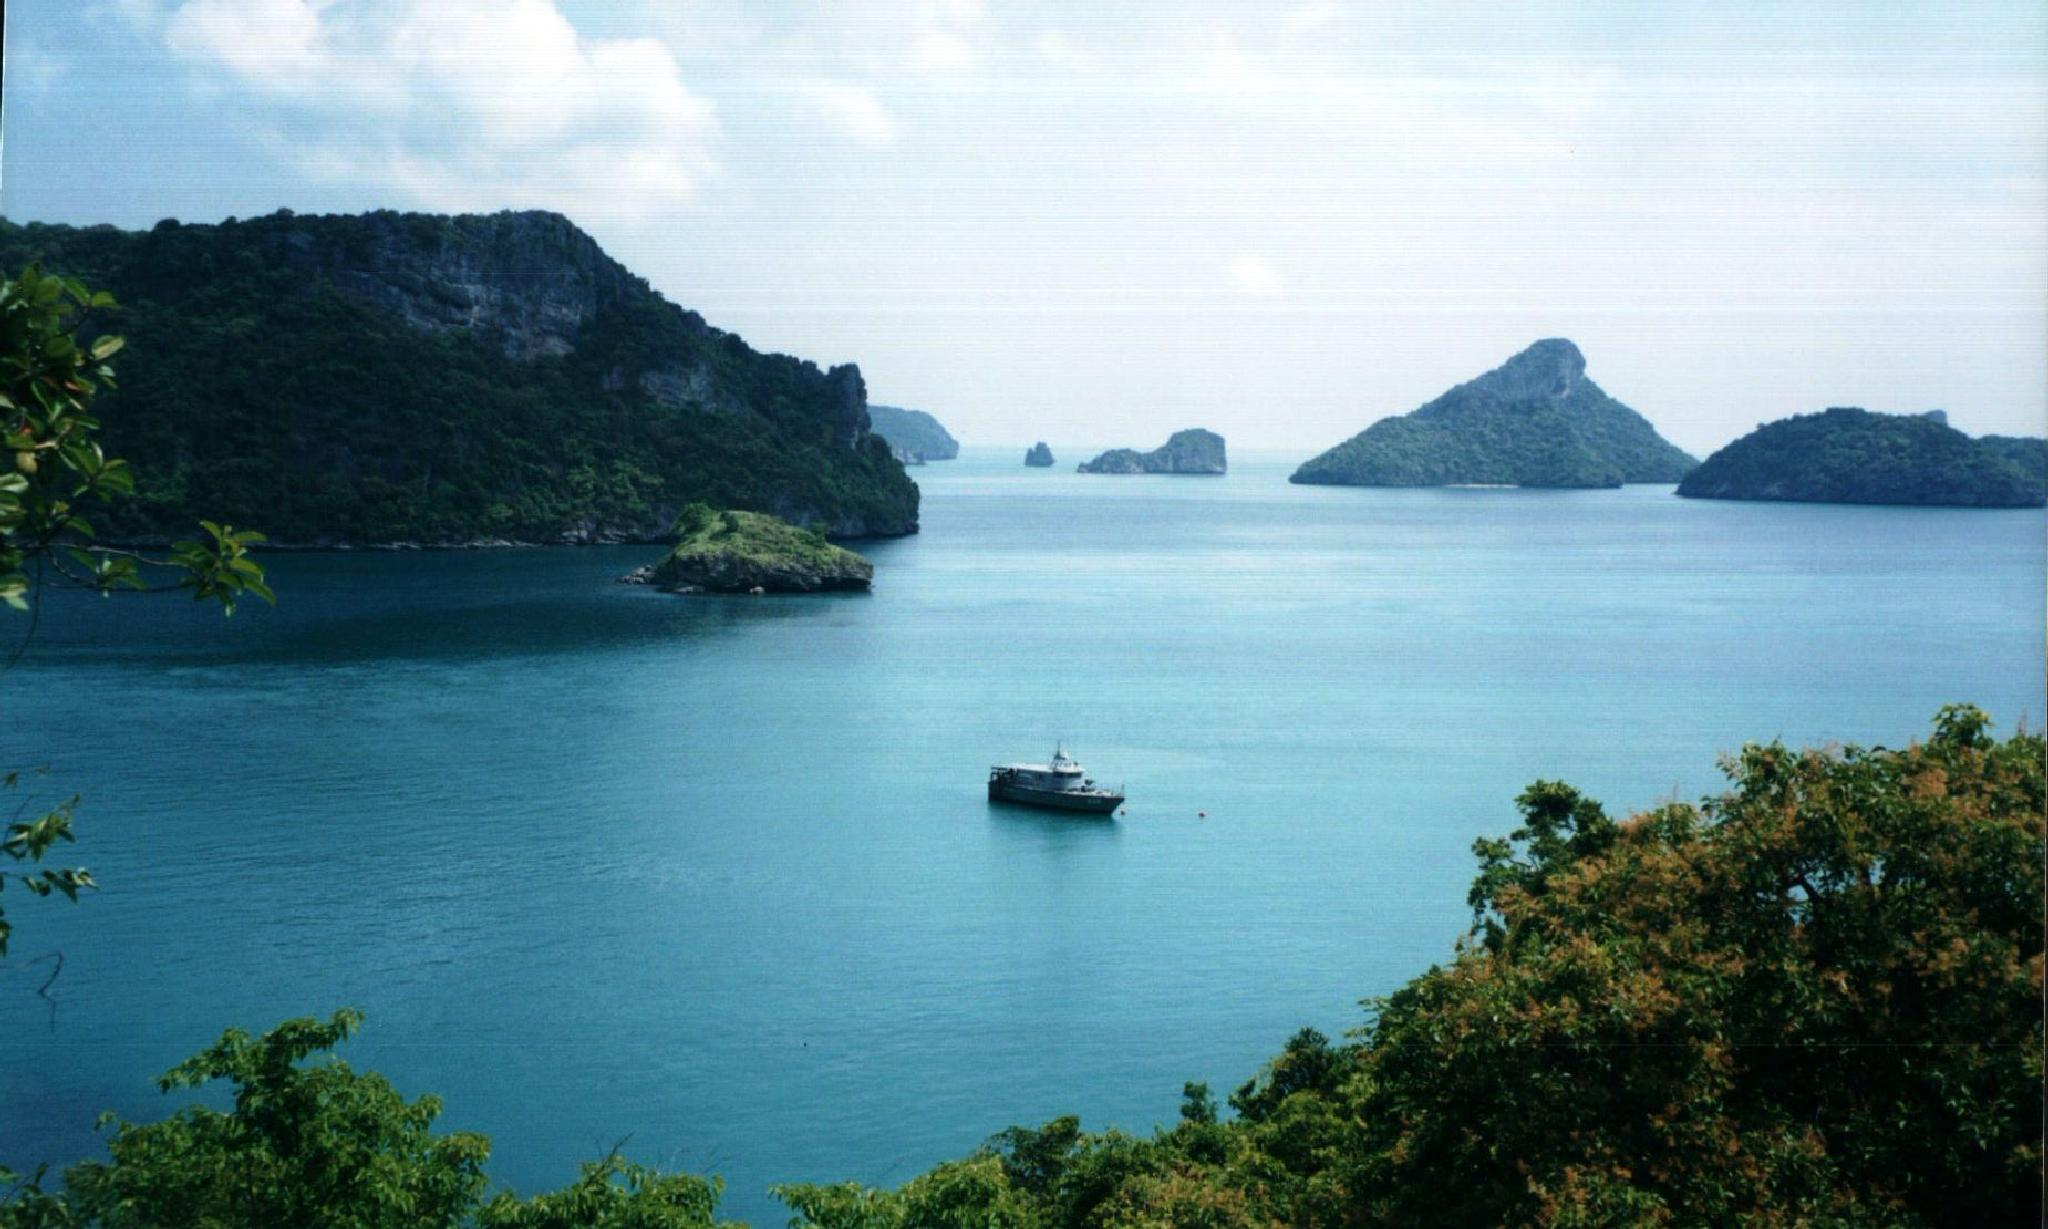 single boat in a beautiful loction in Thailand by cinzia.sawatzky